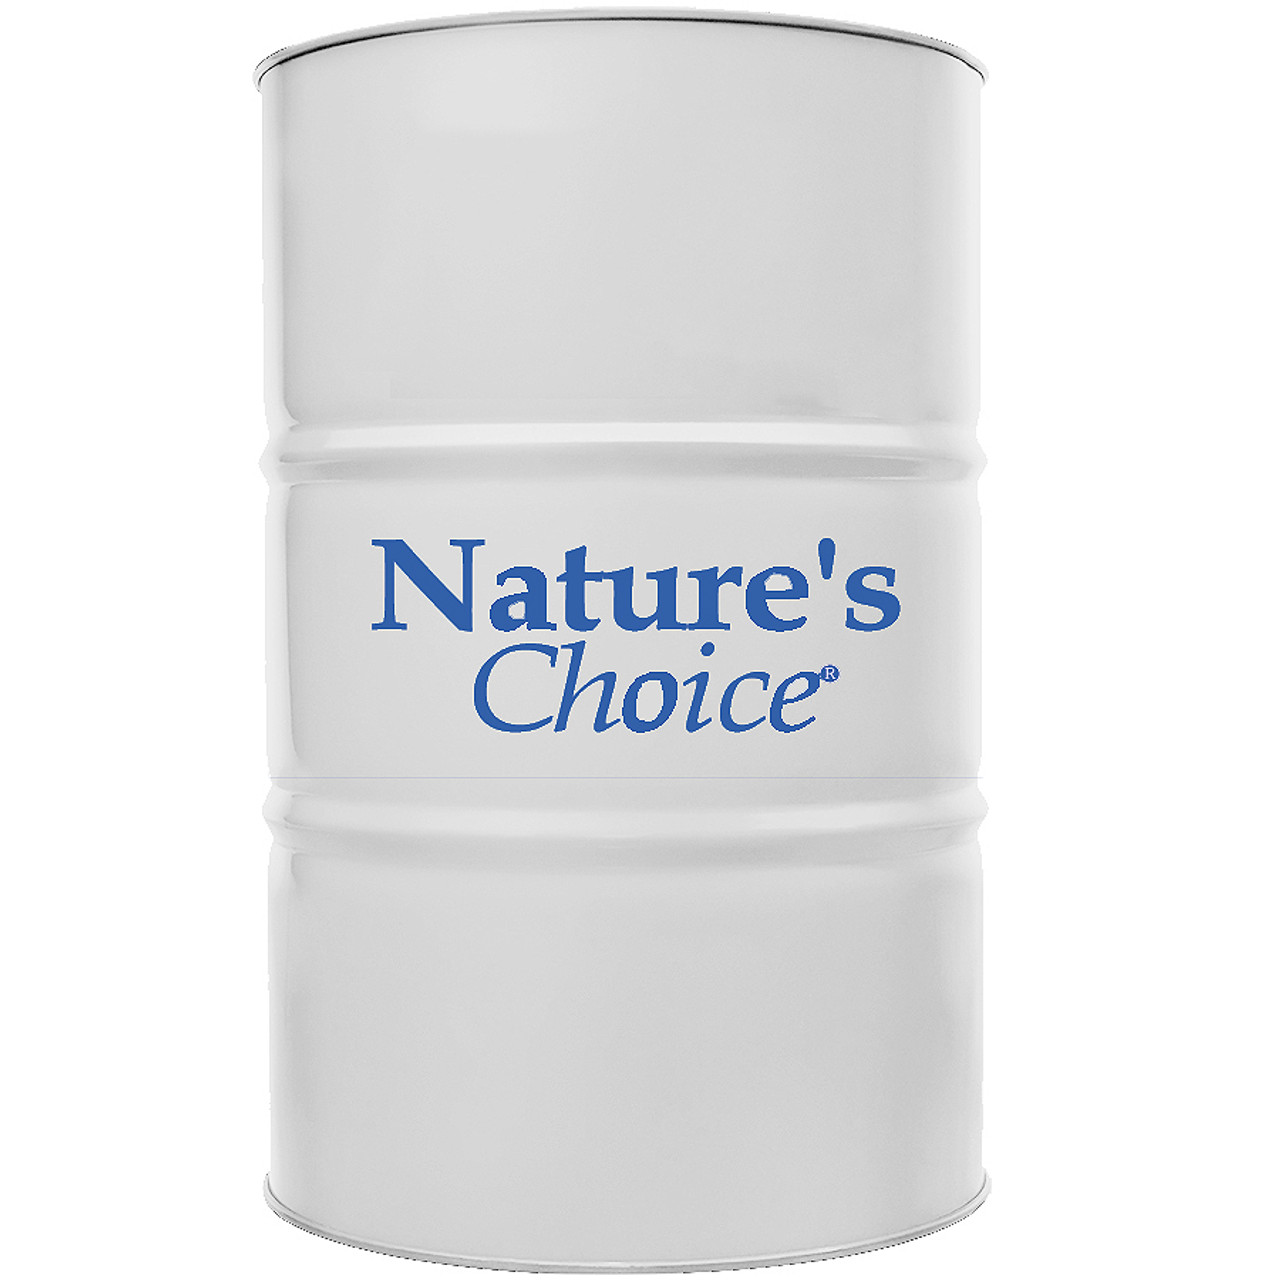 Nature's Choice Re-Refined AW 46